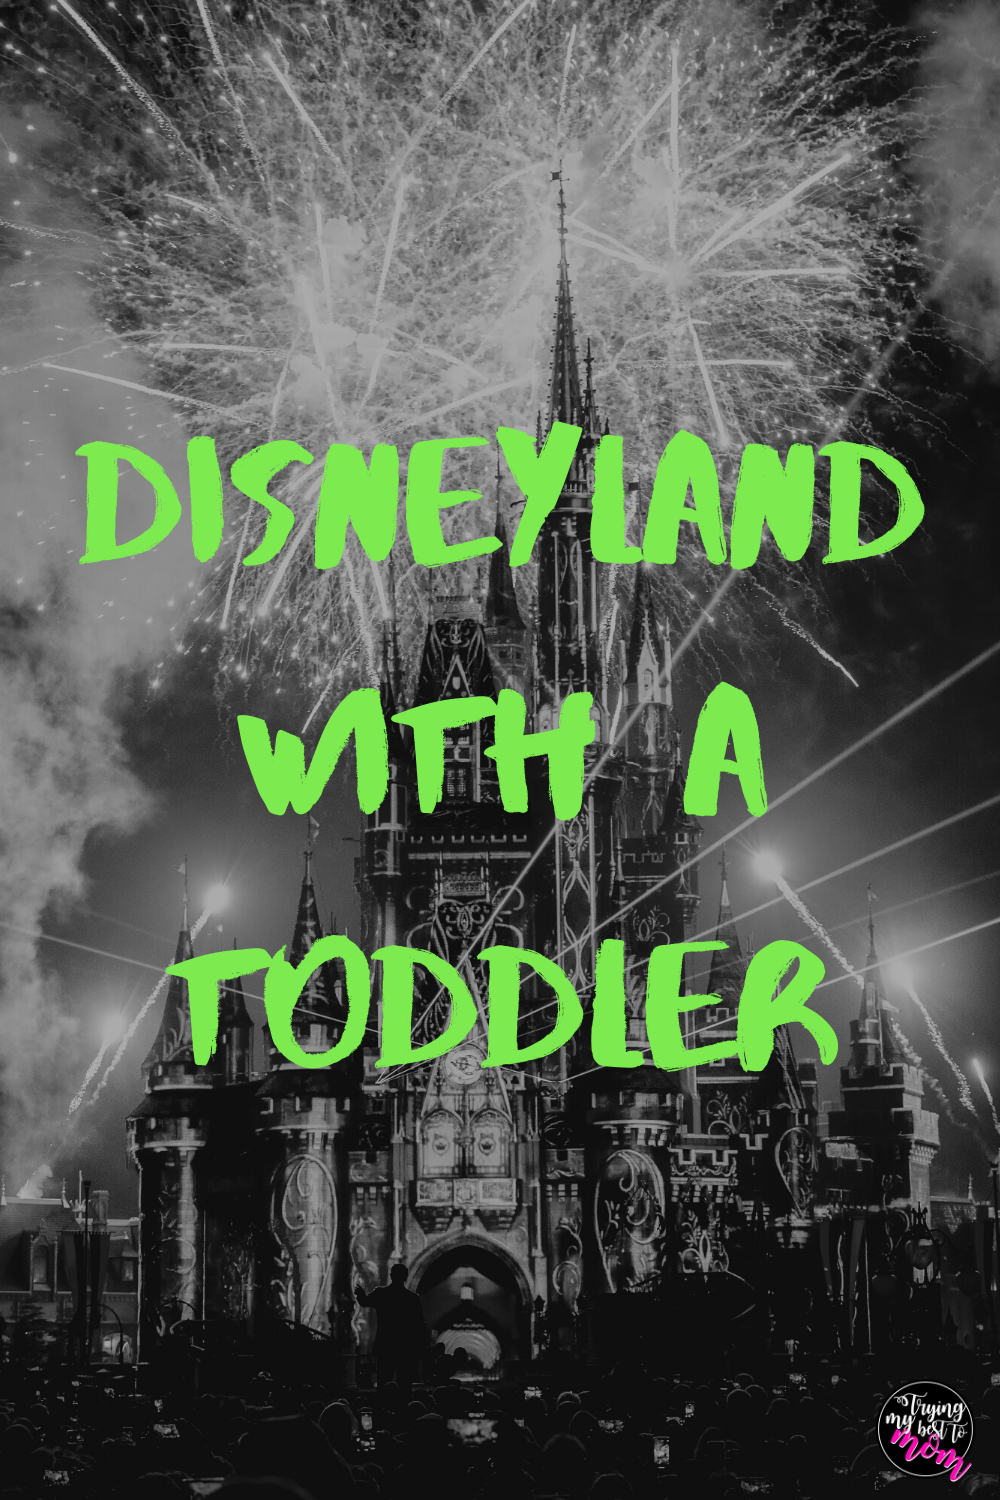 Taking a Toddler to Disneyland